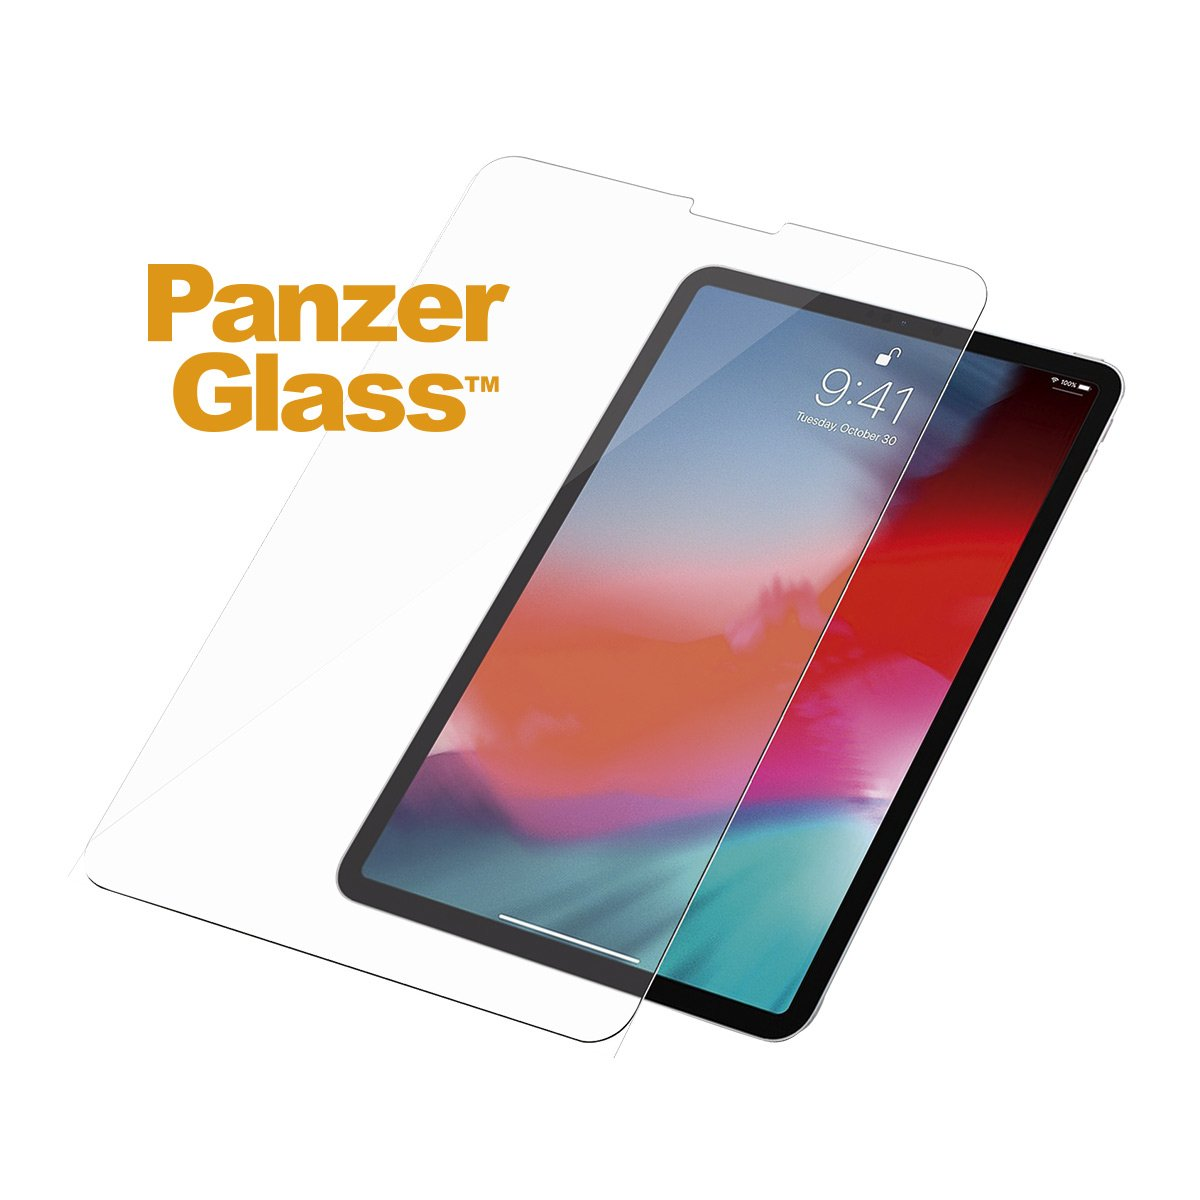 PanzerGlass Apple IPad Screen Protector